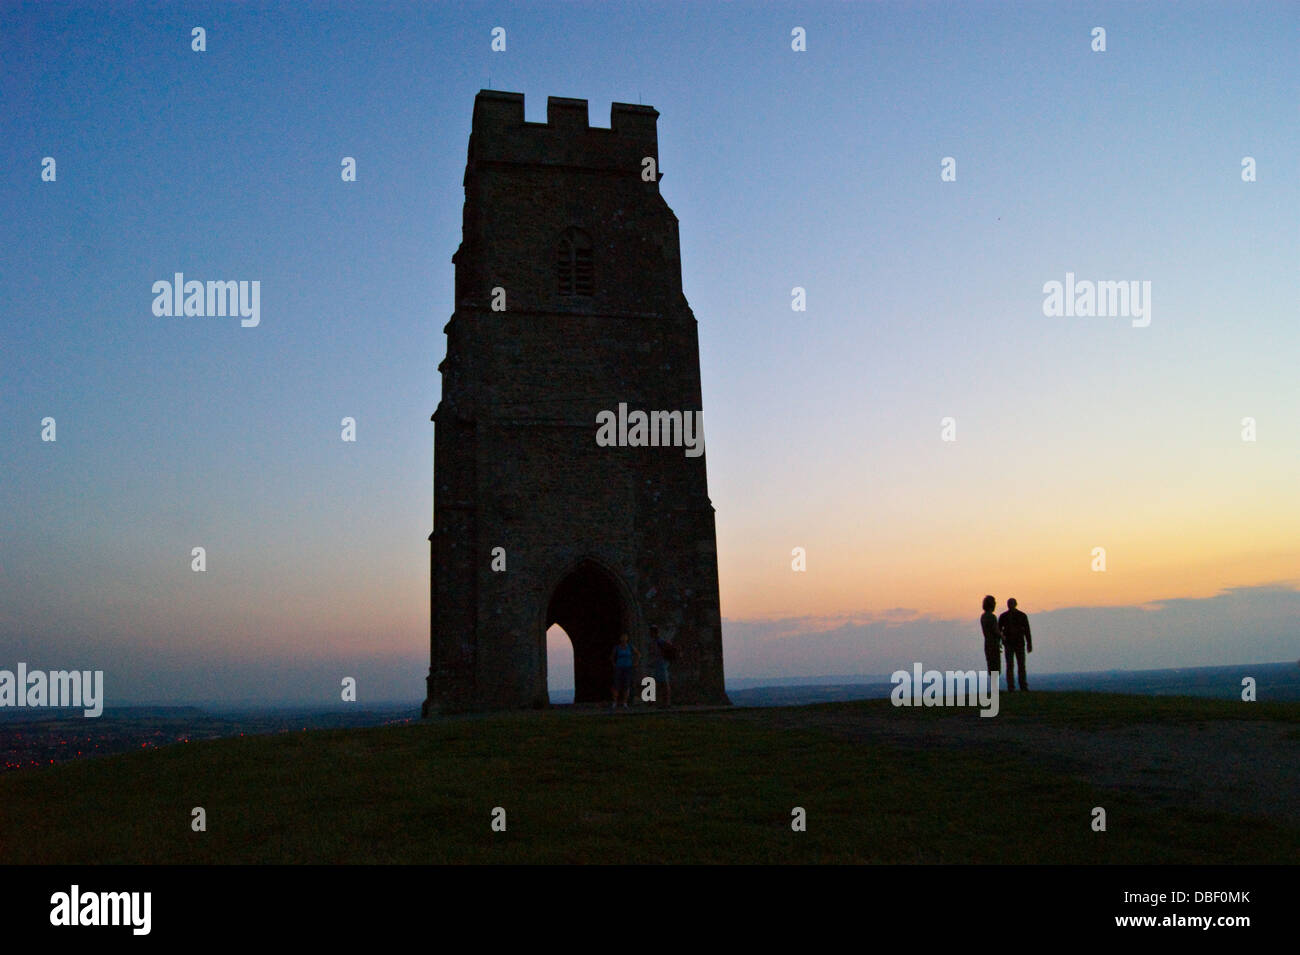 a-couple-by-st-michaels-church-tower-gla